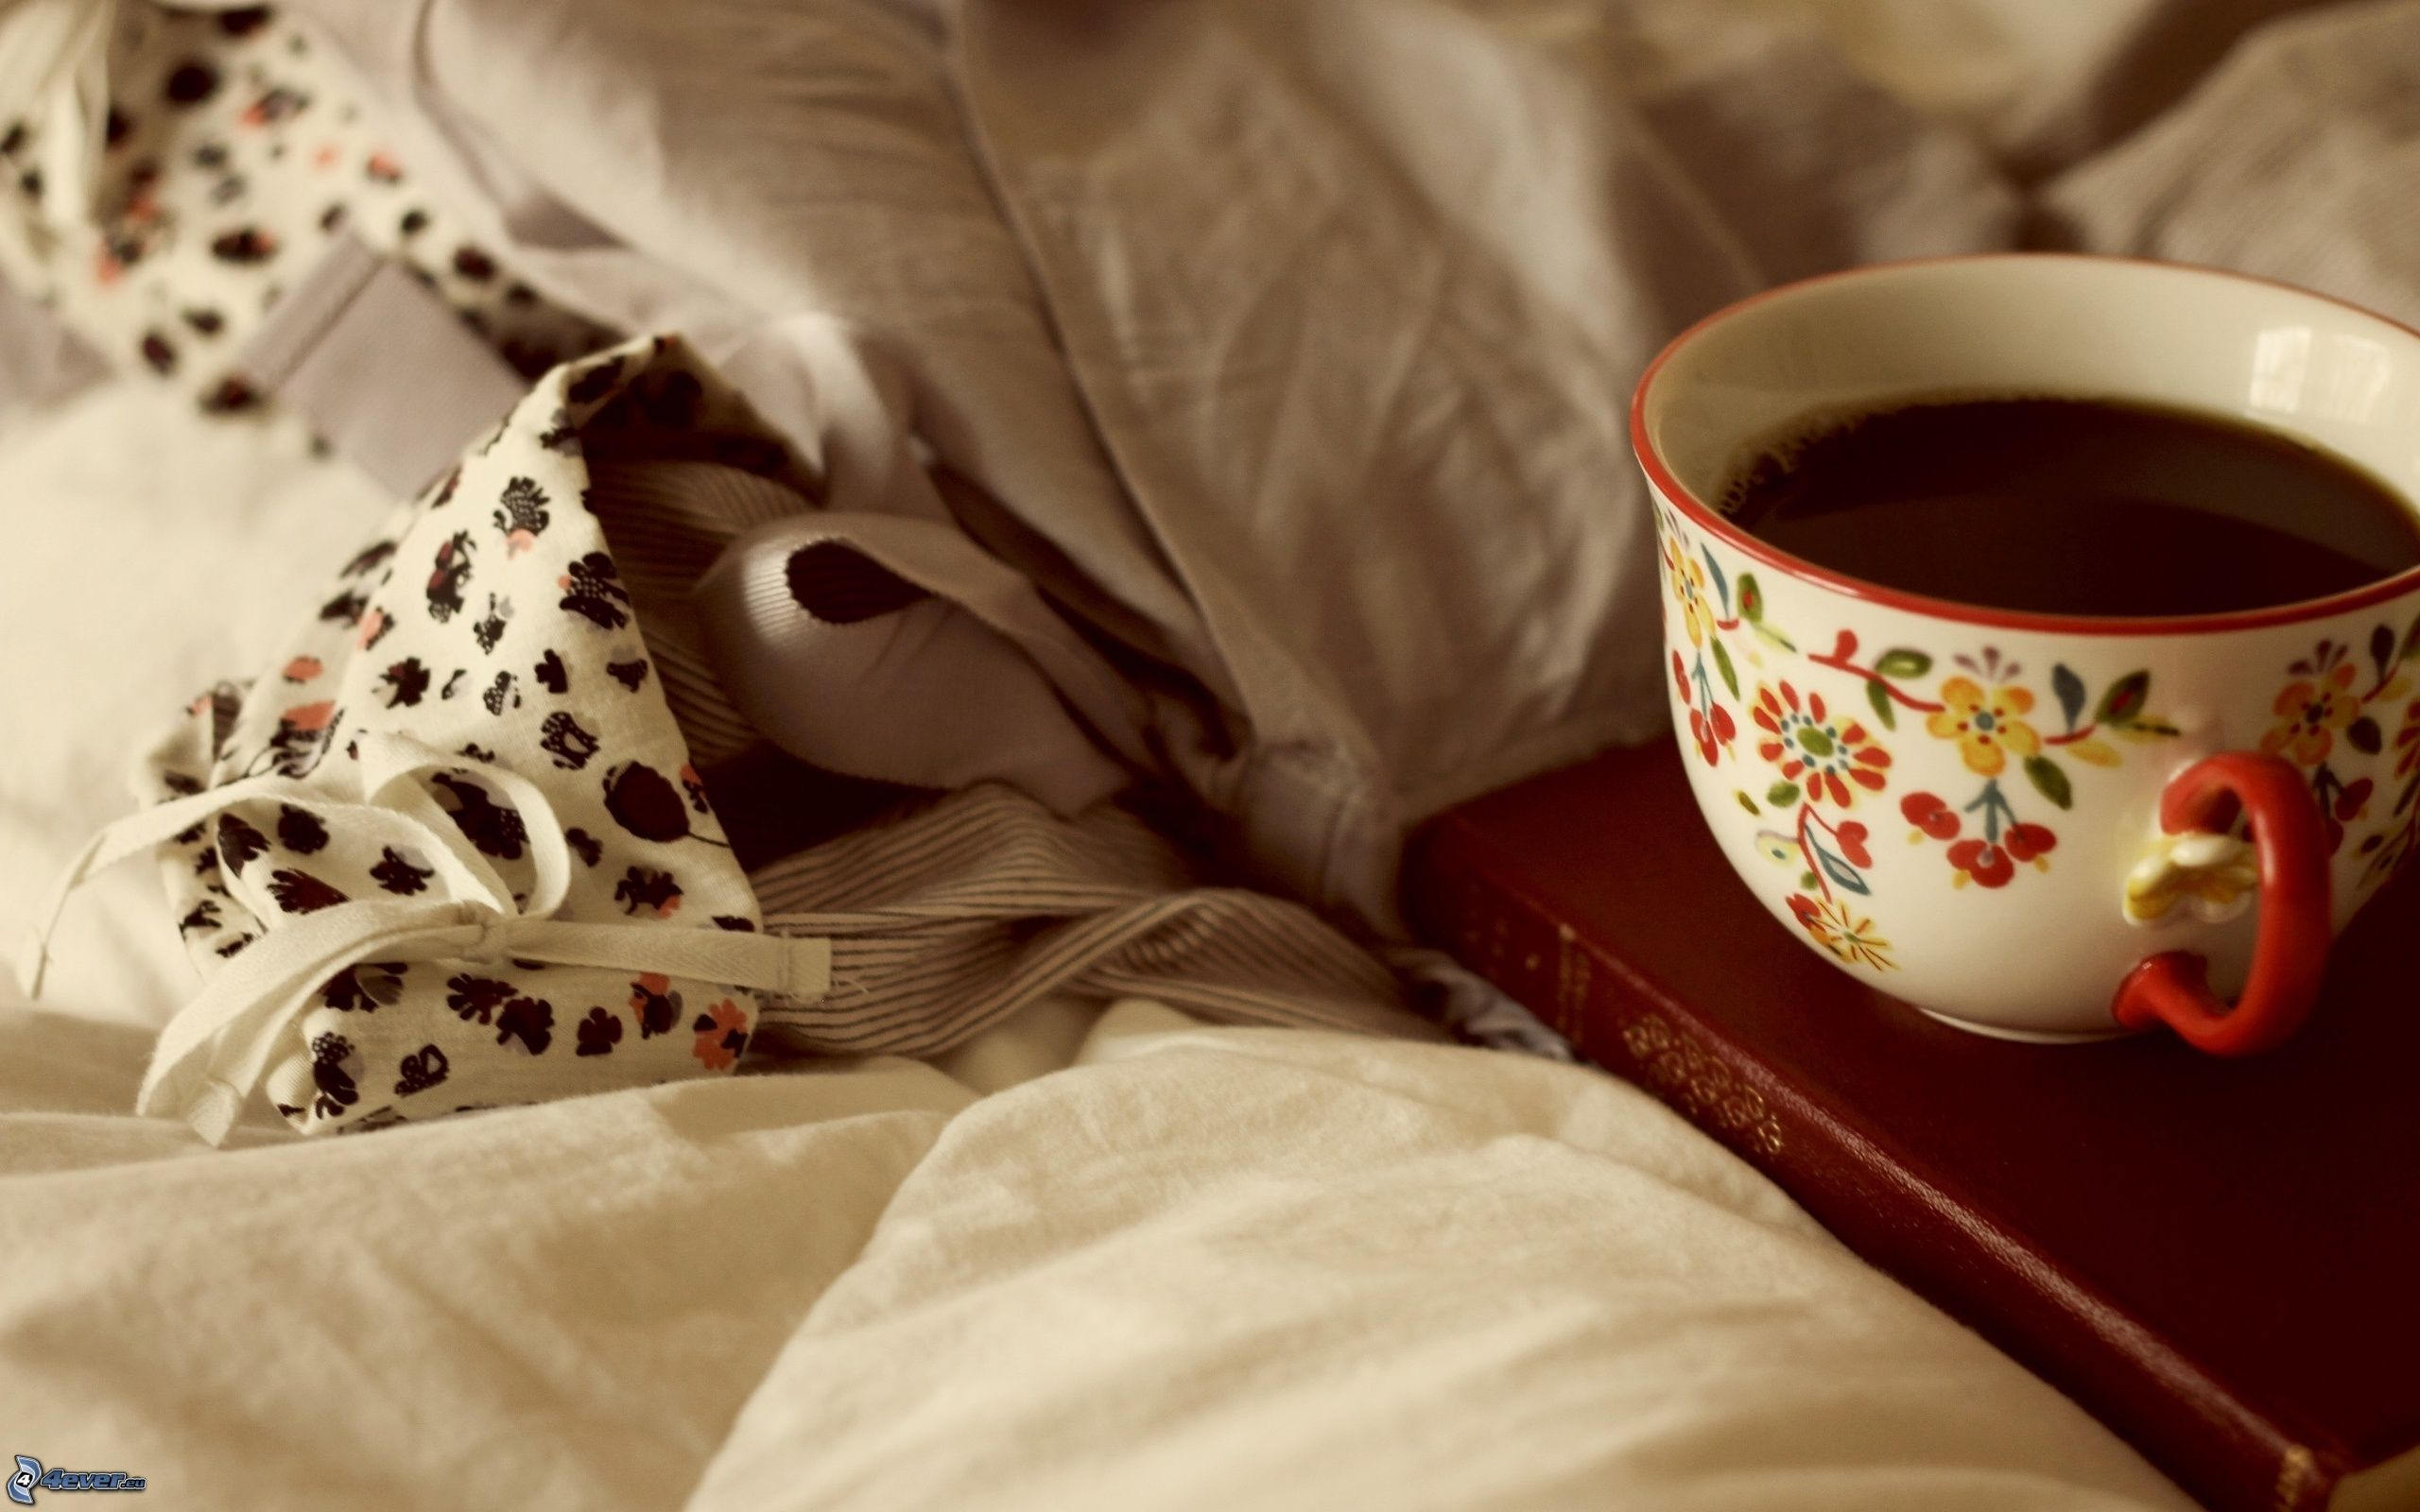 hot coffee wallpaper hd - photo #36